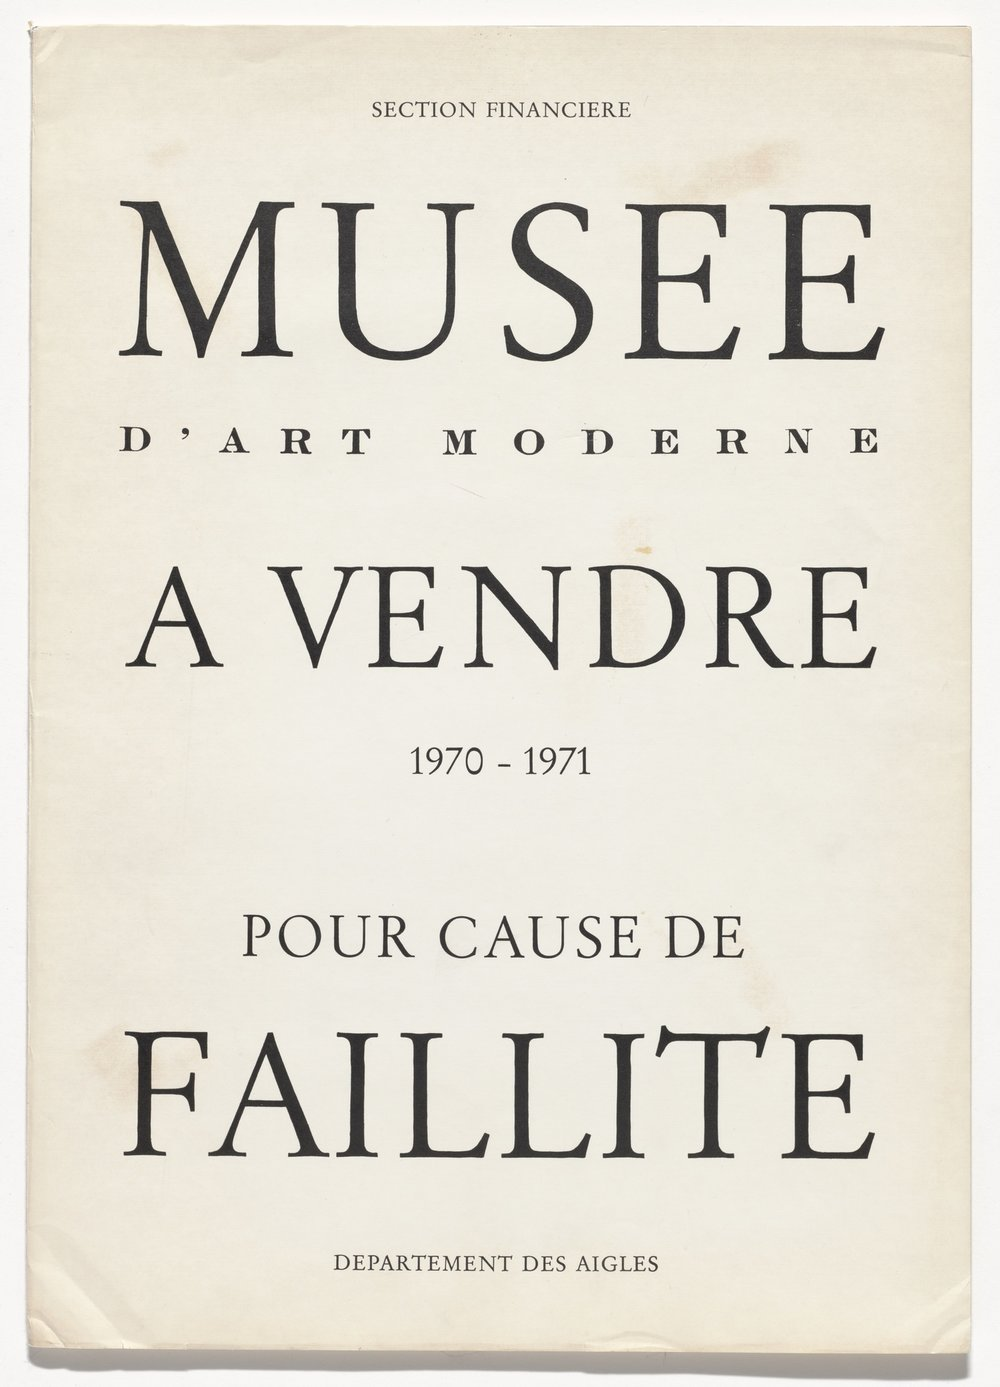 Marcel Broodthaers,  Musée d'Art Moderne à vendre – pour cause de faillite (Museum of Modern Art for sale – due to bankruptcy). 1970–71. Artist's book, letterpress printed dust jacket wrapped around catalogue of Kӧlner Kunstmarkt '71 with artist's inscriptions, overall (folded, with catalogue): 17 11/16 x 12 5/8 x 5/16 in. (45 x 32 x 0.8 cm). Publisher: Galerie Michael Werner, Cologne. Edition: 19. The Museum of Modern Art, New York.